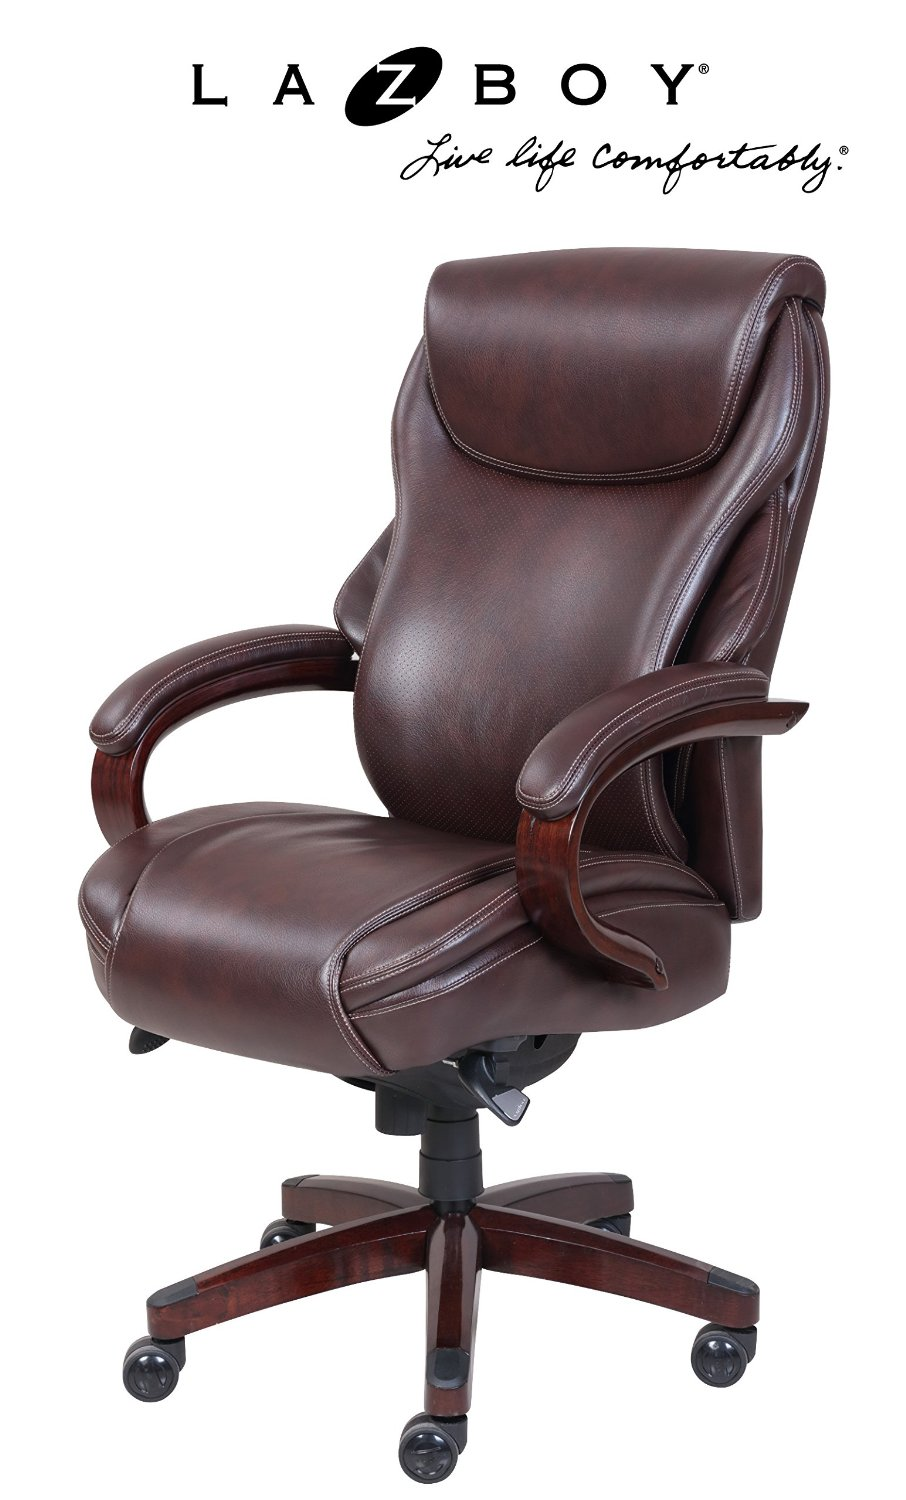 La Z Boy Hyland Executive Office Chair